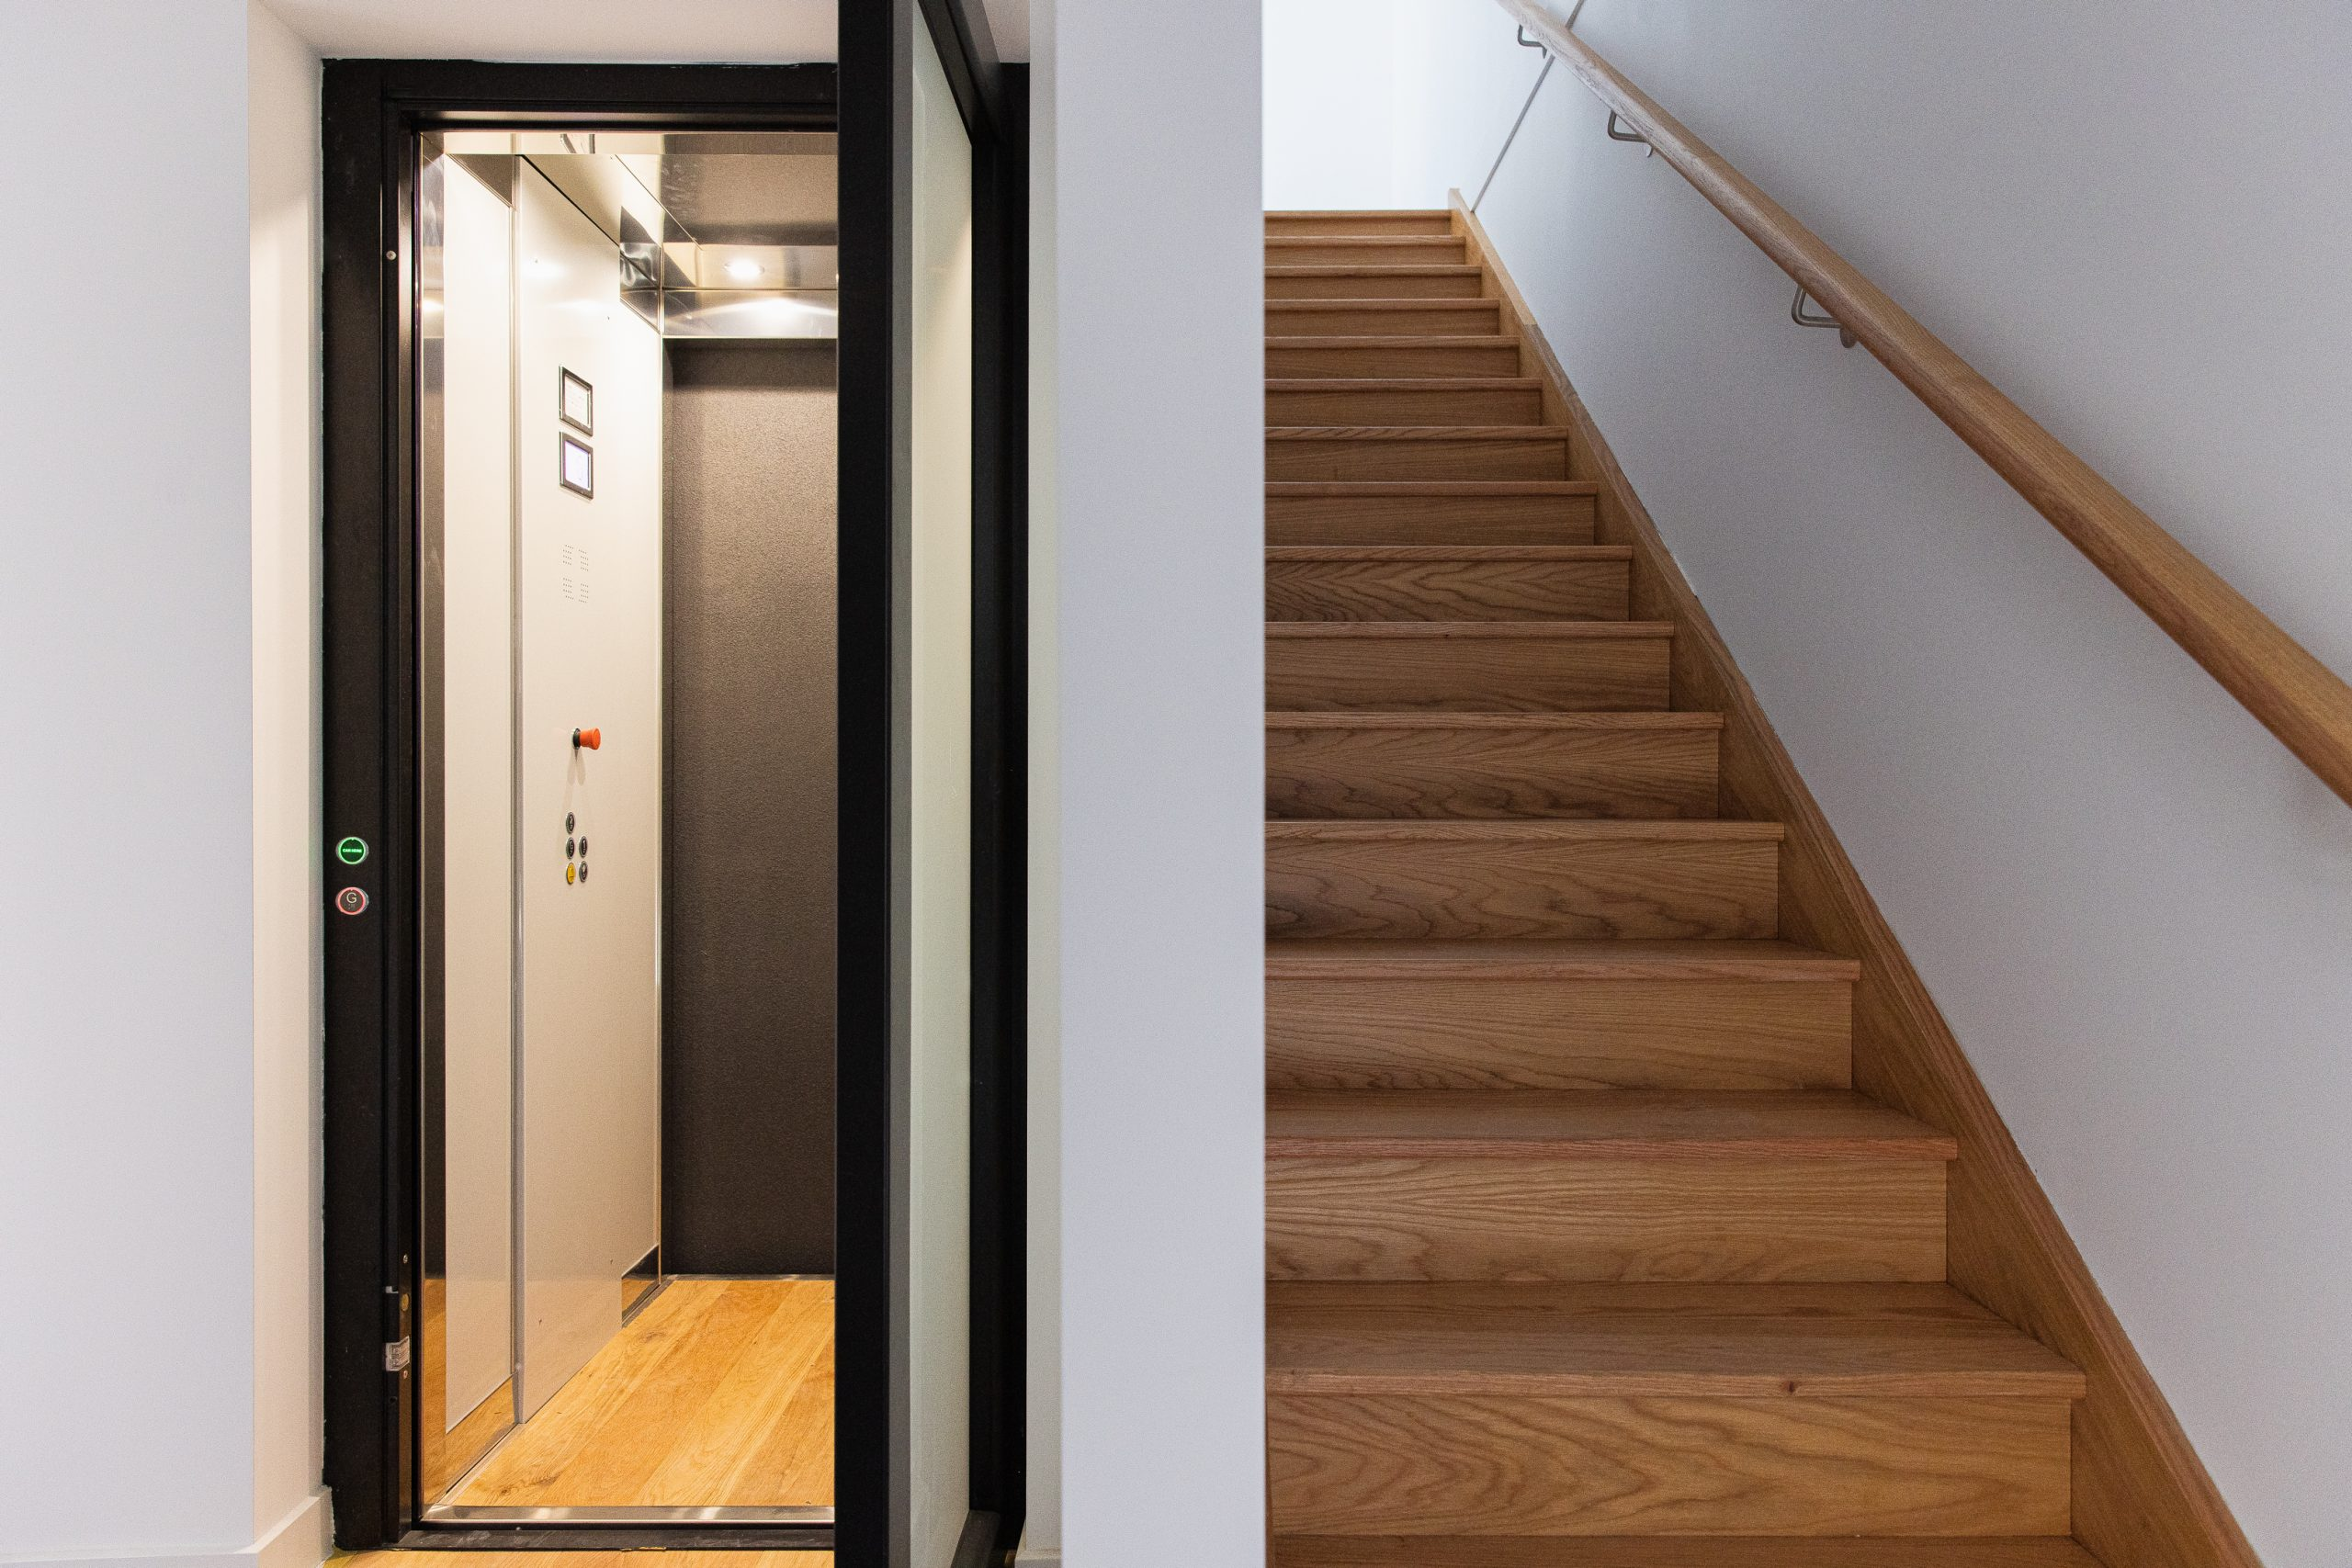 black rimmed lift with white walls and wooden flooring, next to a staircase.